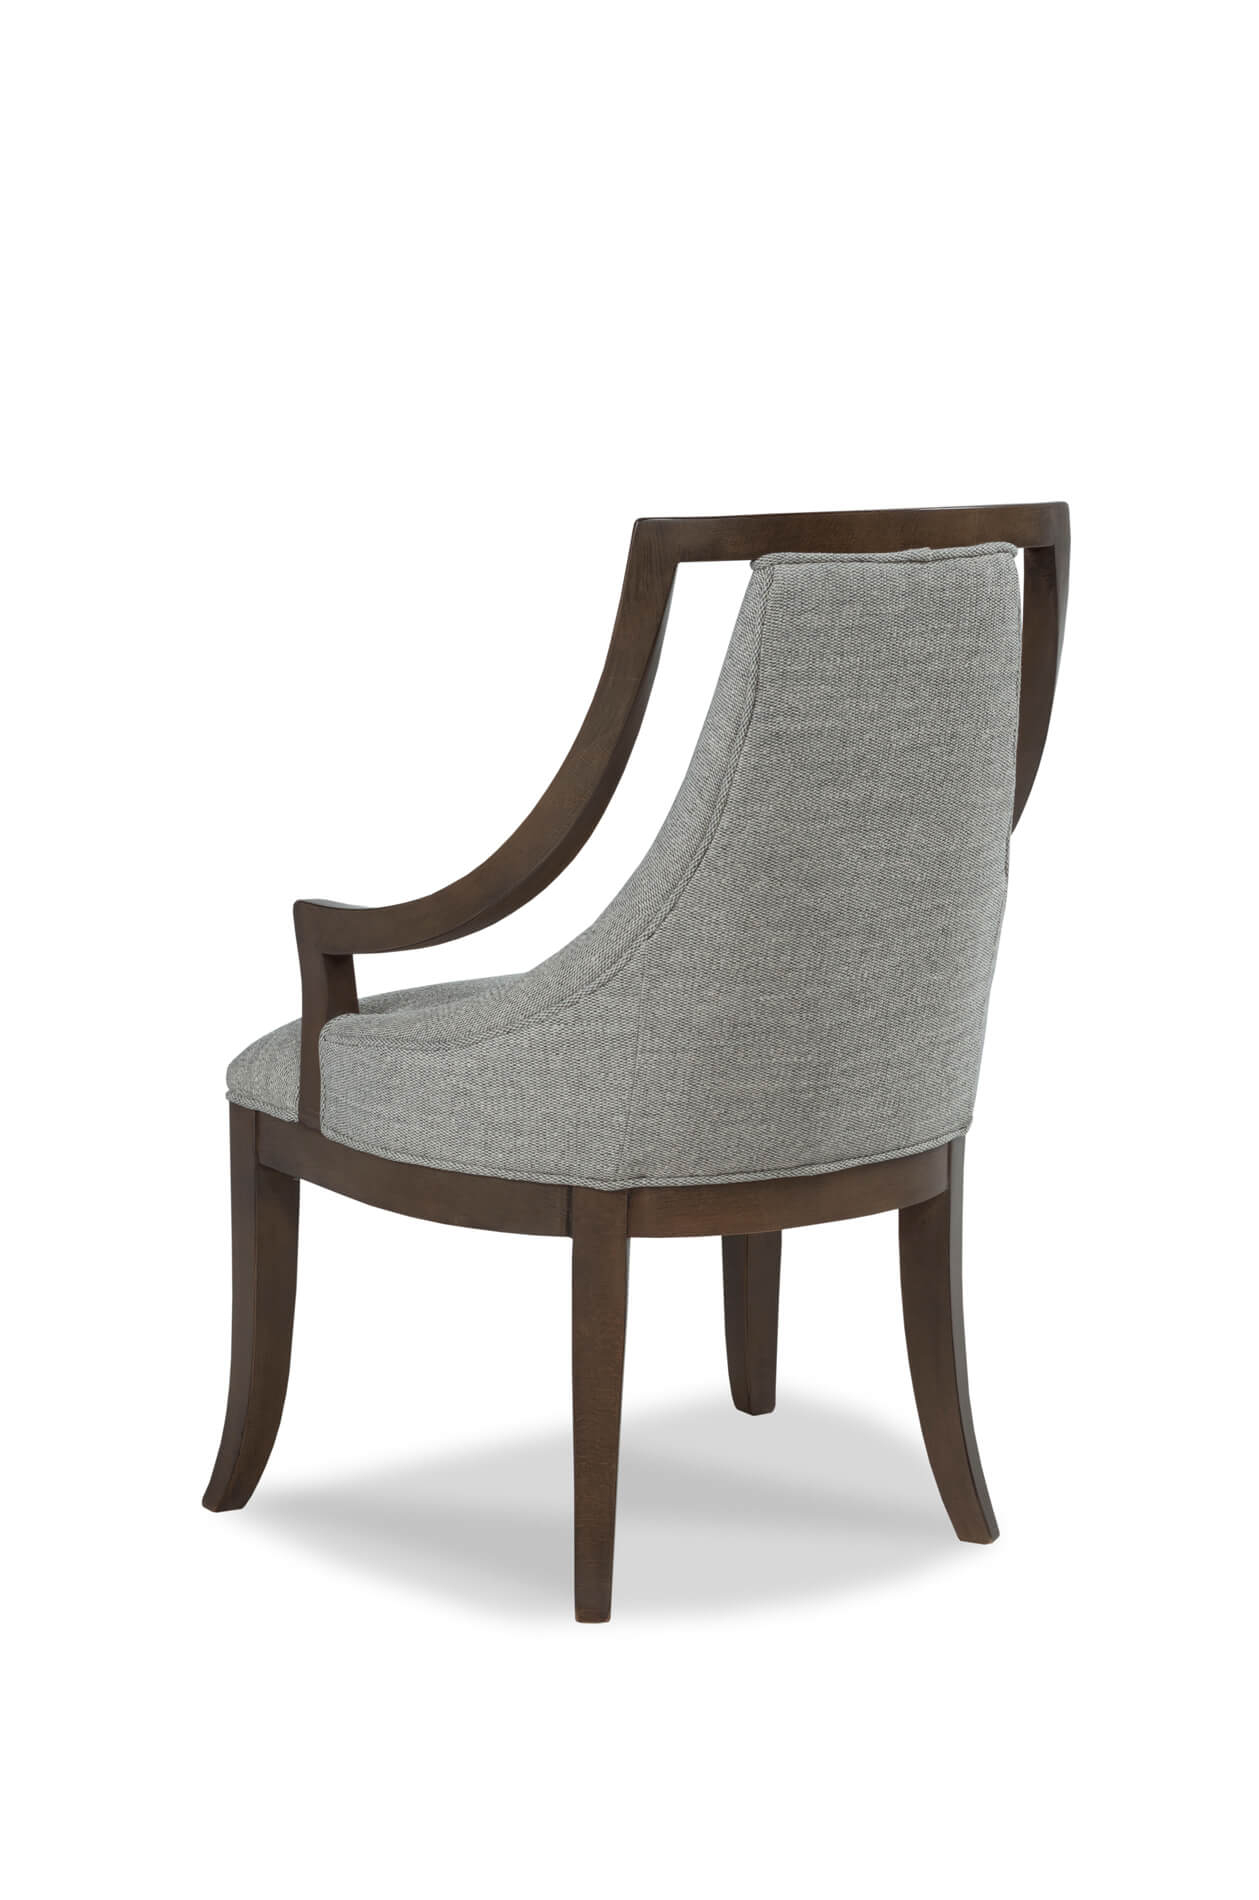 Caldwell Upholstered Dining Arm Chair Regarding Caldwell Armchairs (View 8 of 15)